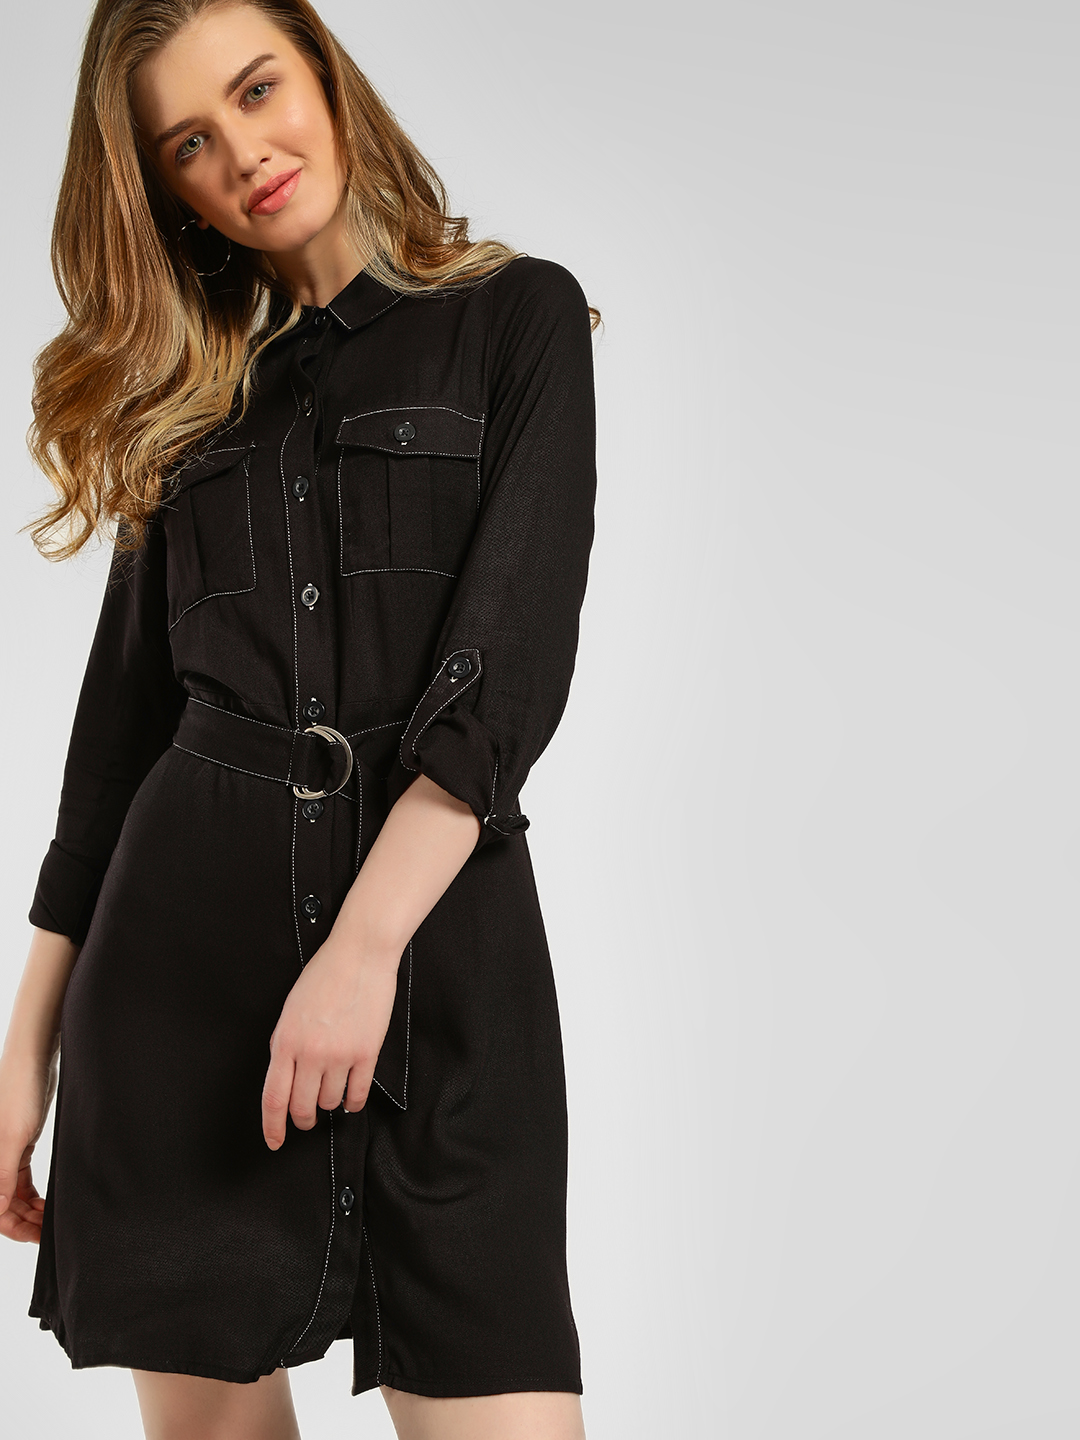 New Look Black Rolled-Up Sleeve Shirt Dress 1